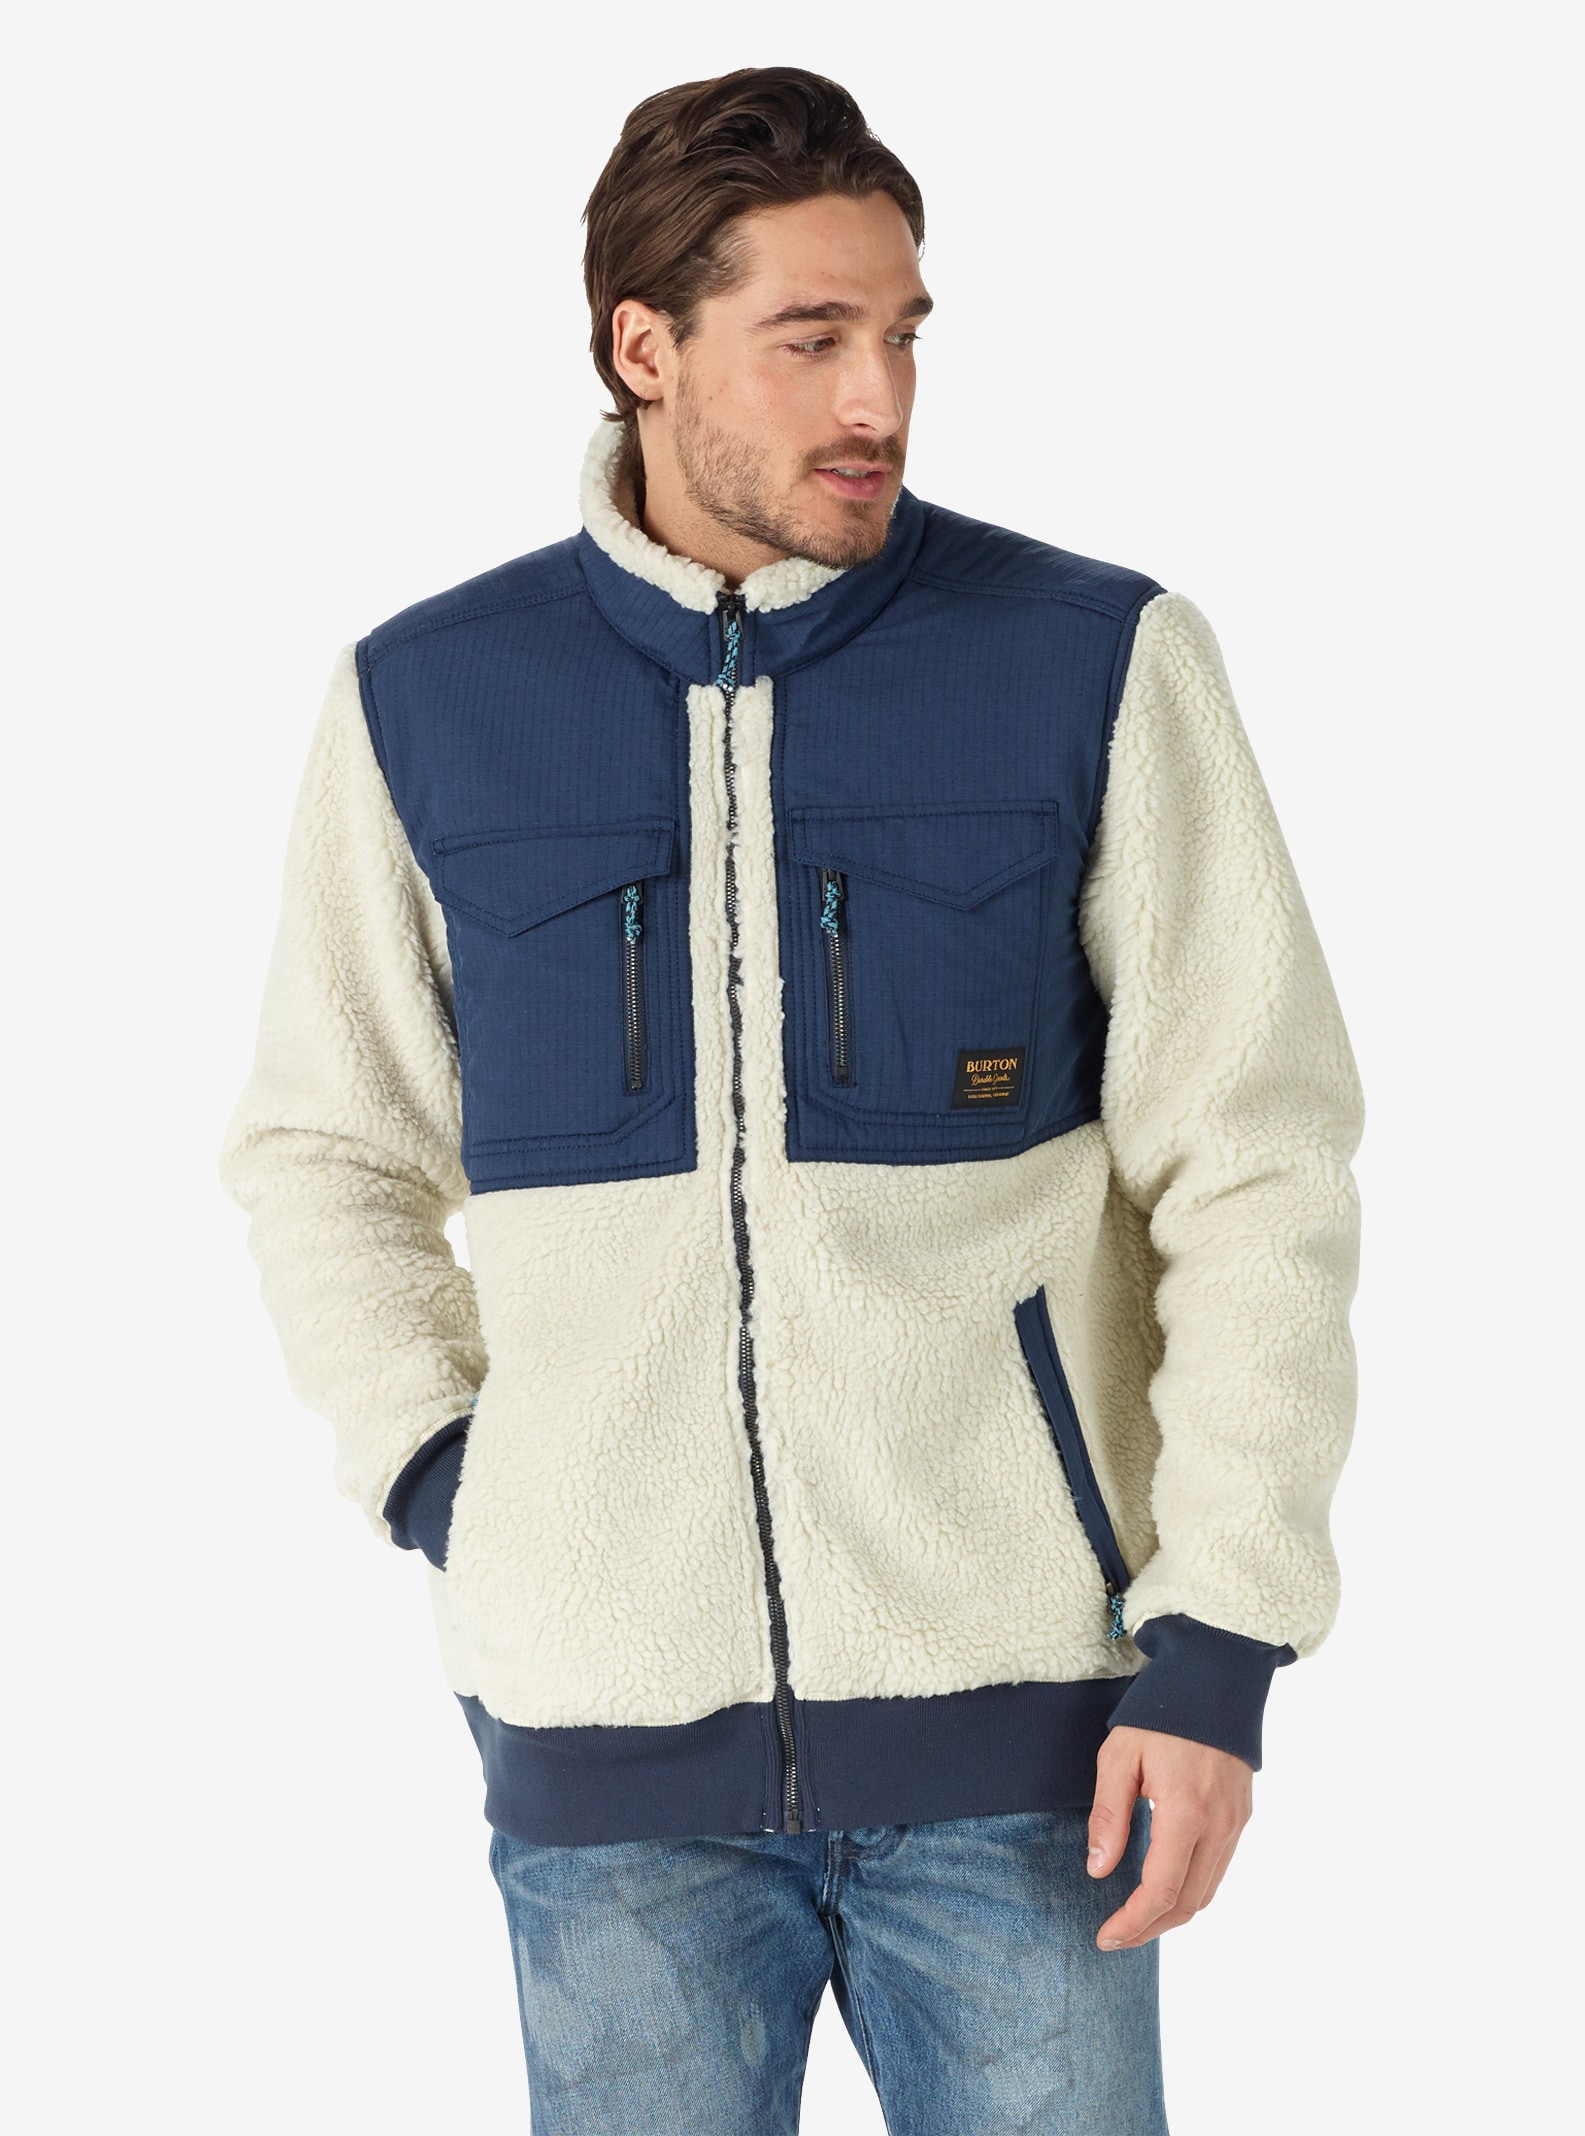 Men's Burton Bower Full-Zip Fleece shown in Bone White